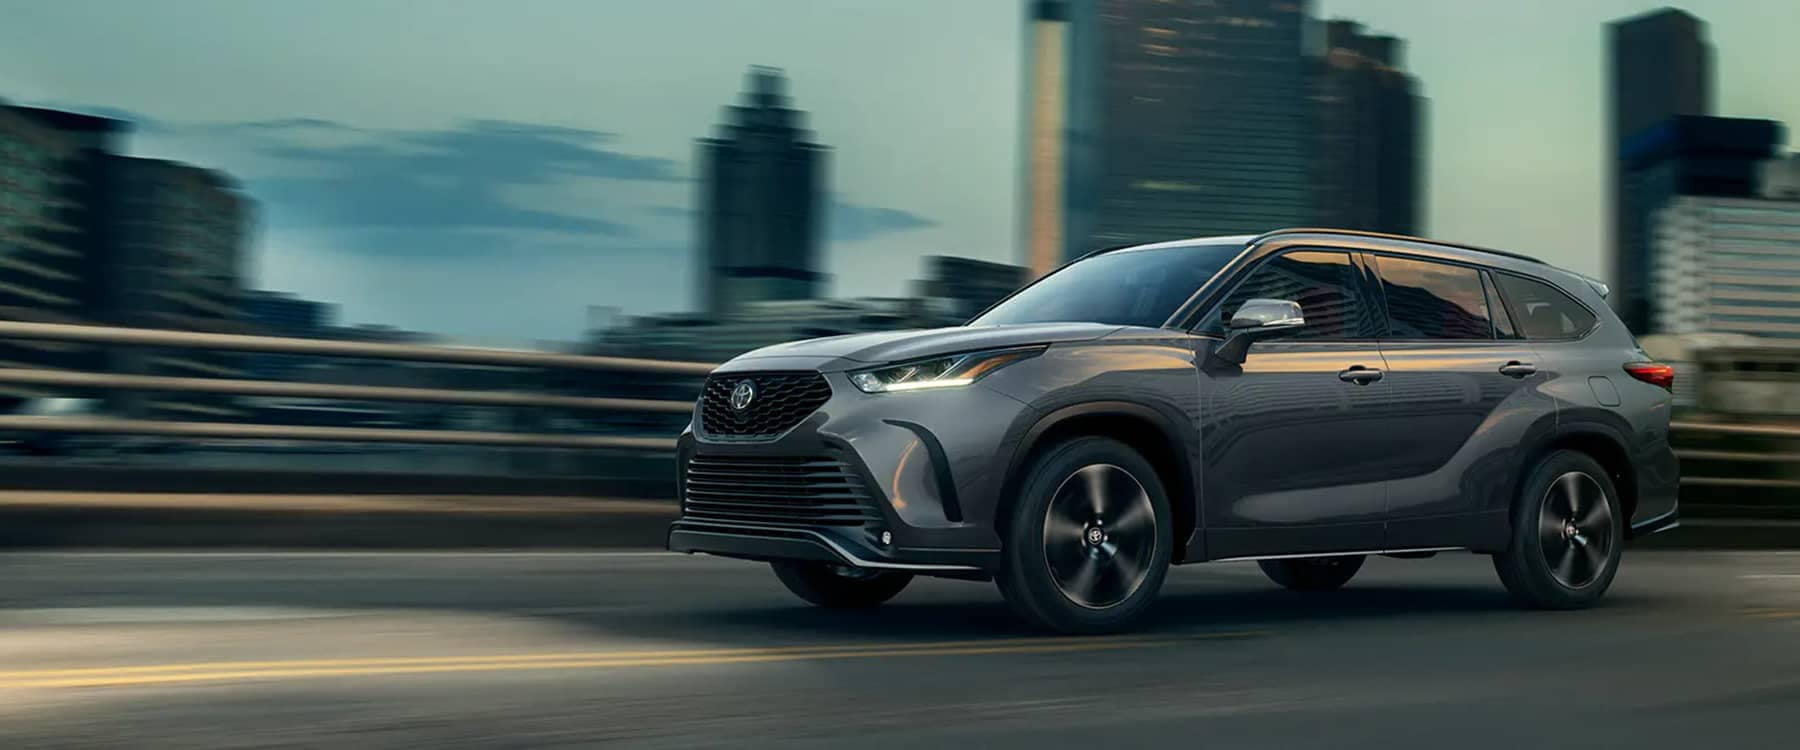 2021 Toyota Highlander driving in city